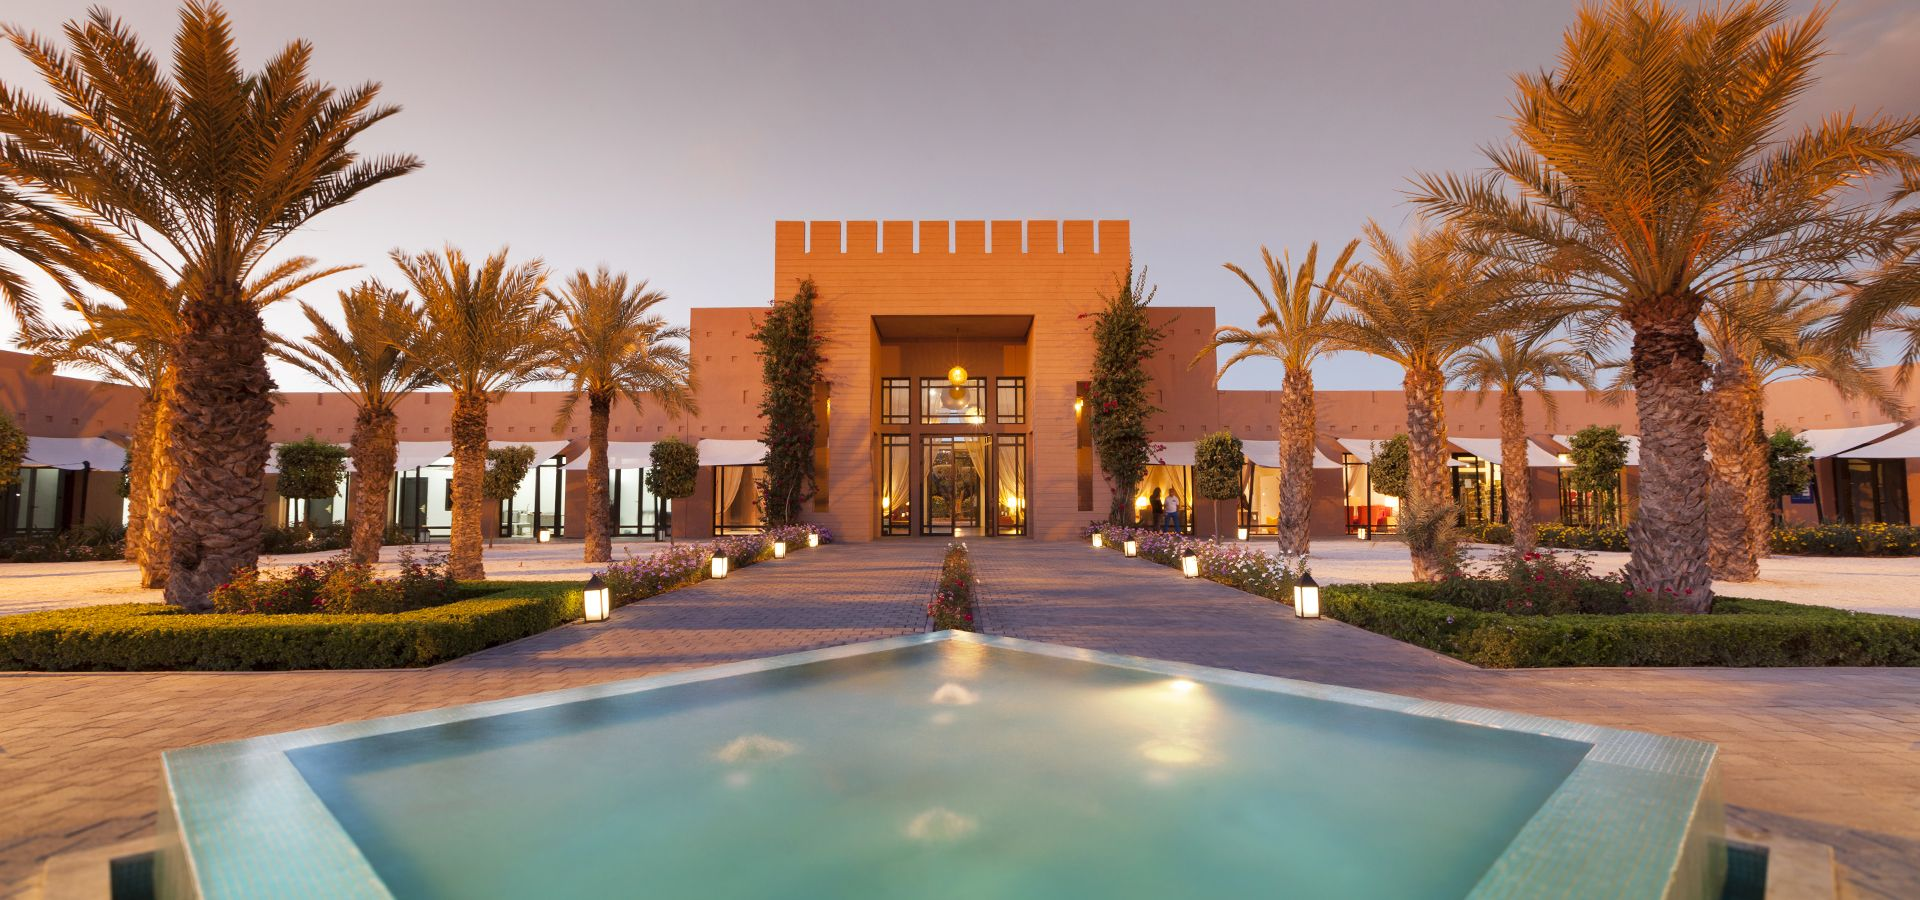 Hotel All In Marrakech